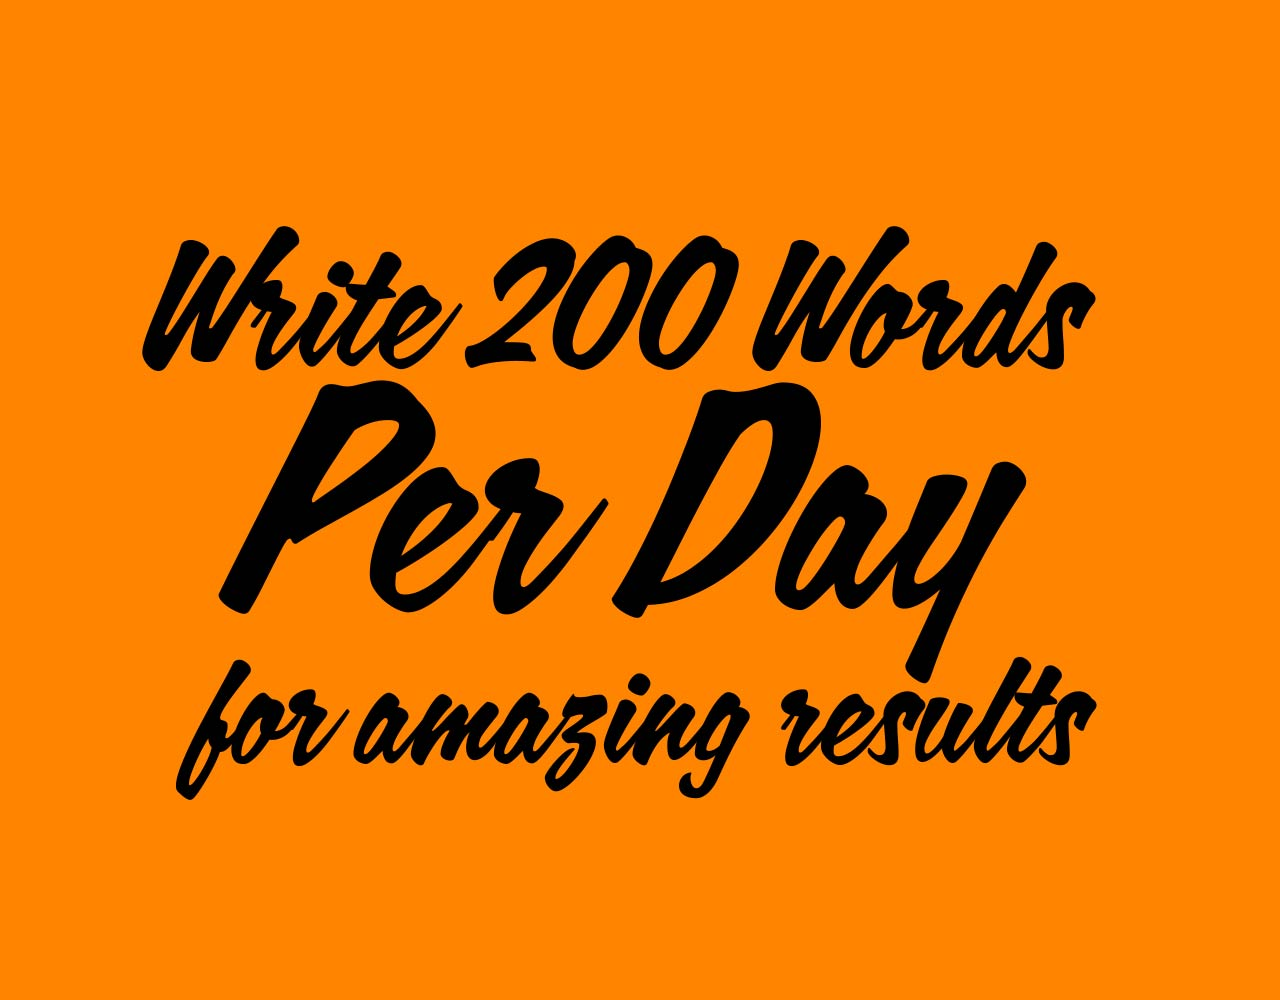 200 Words a Day